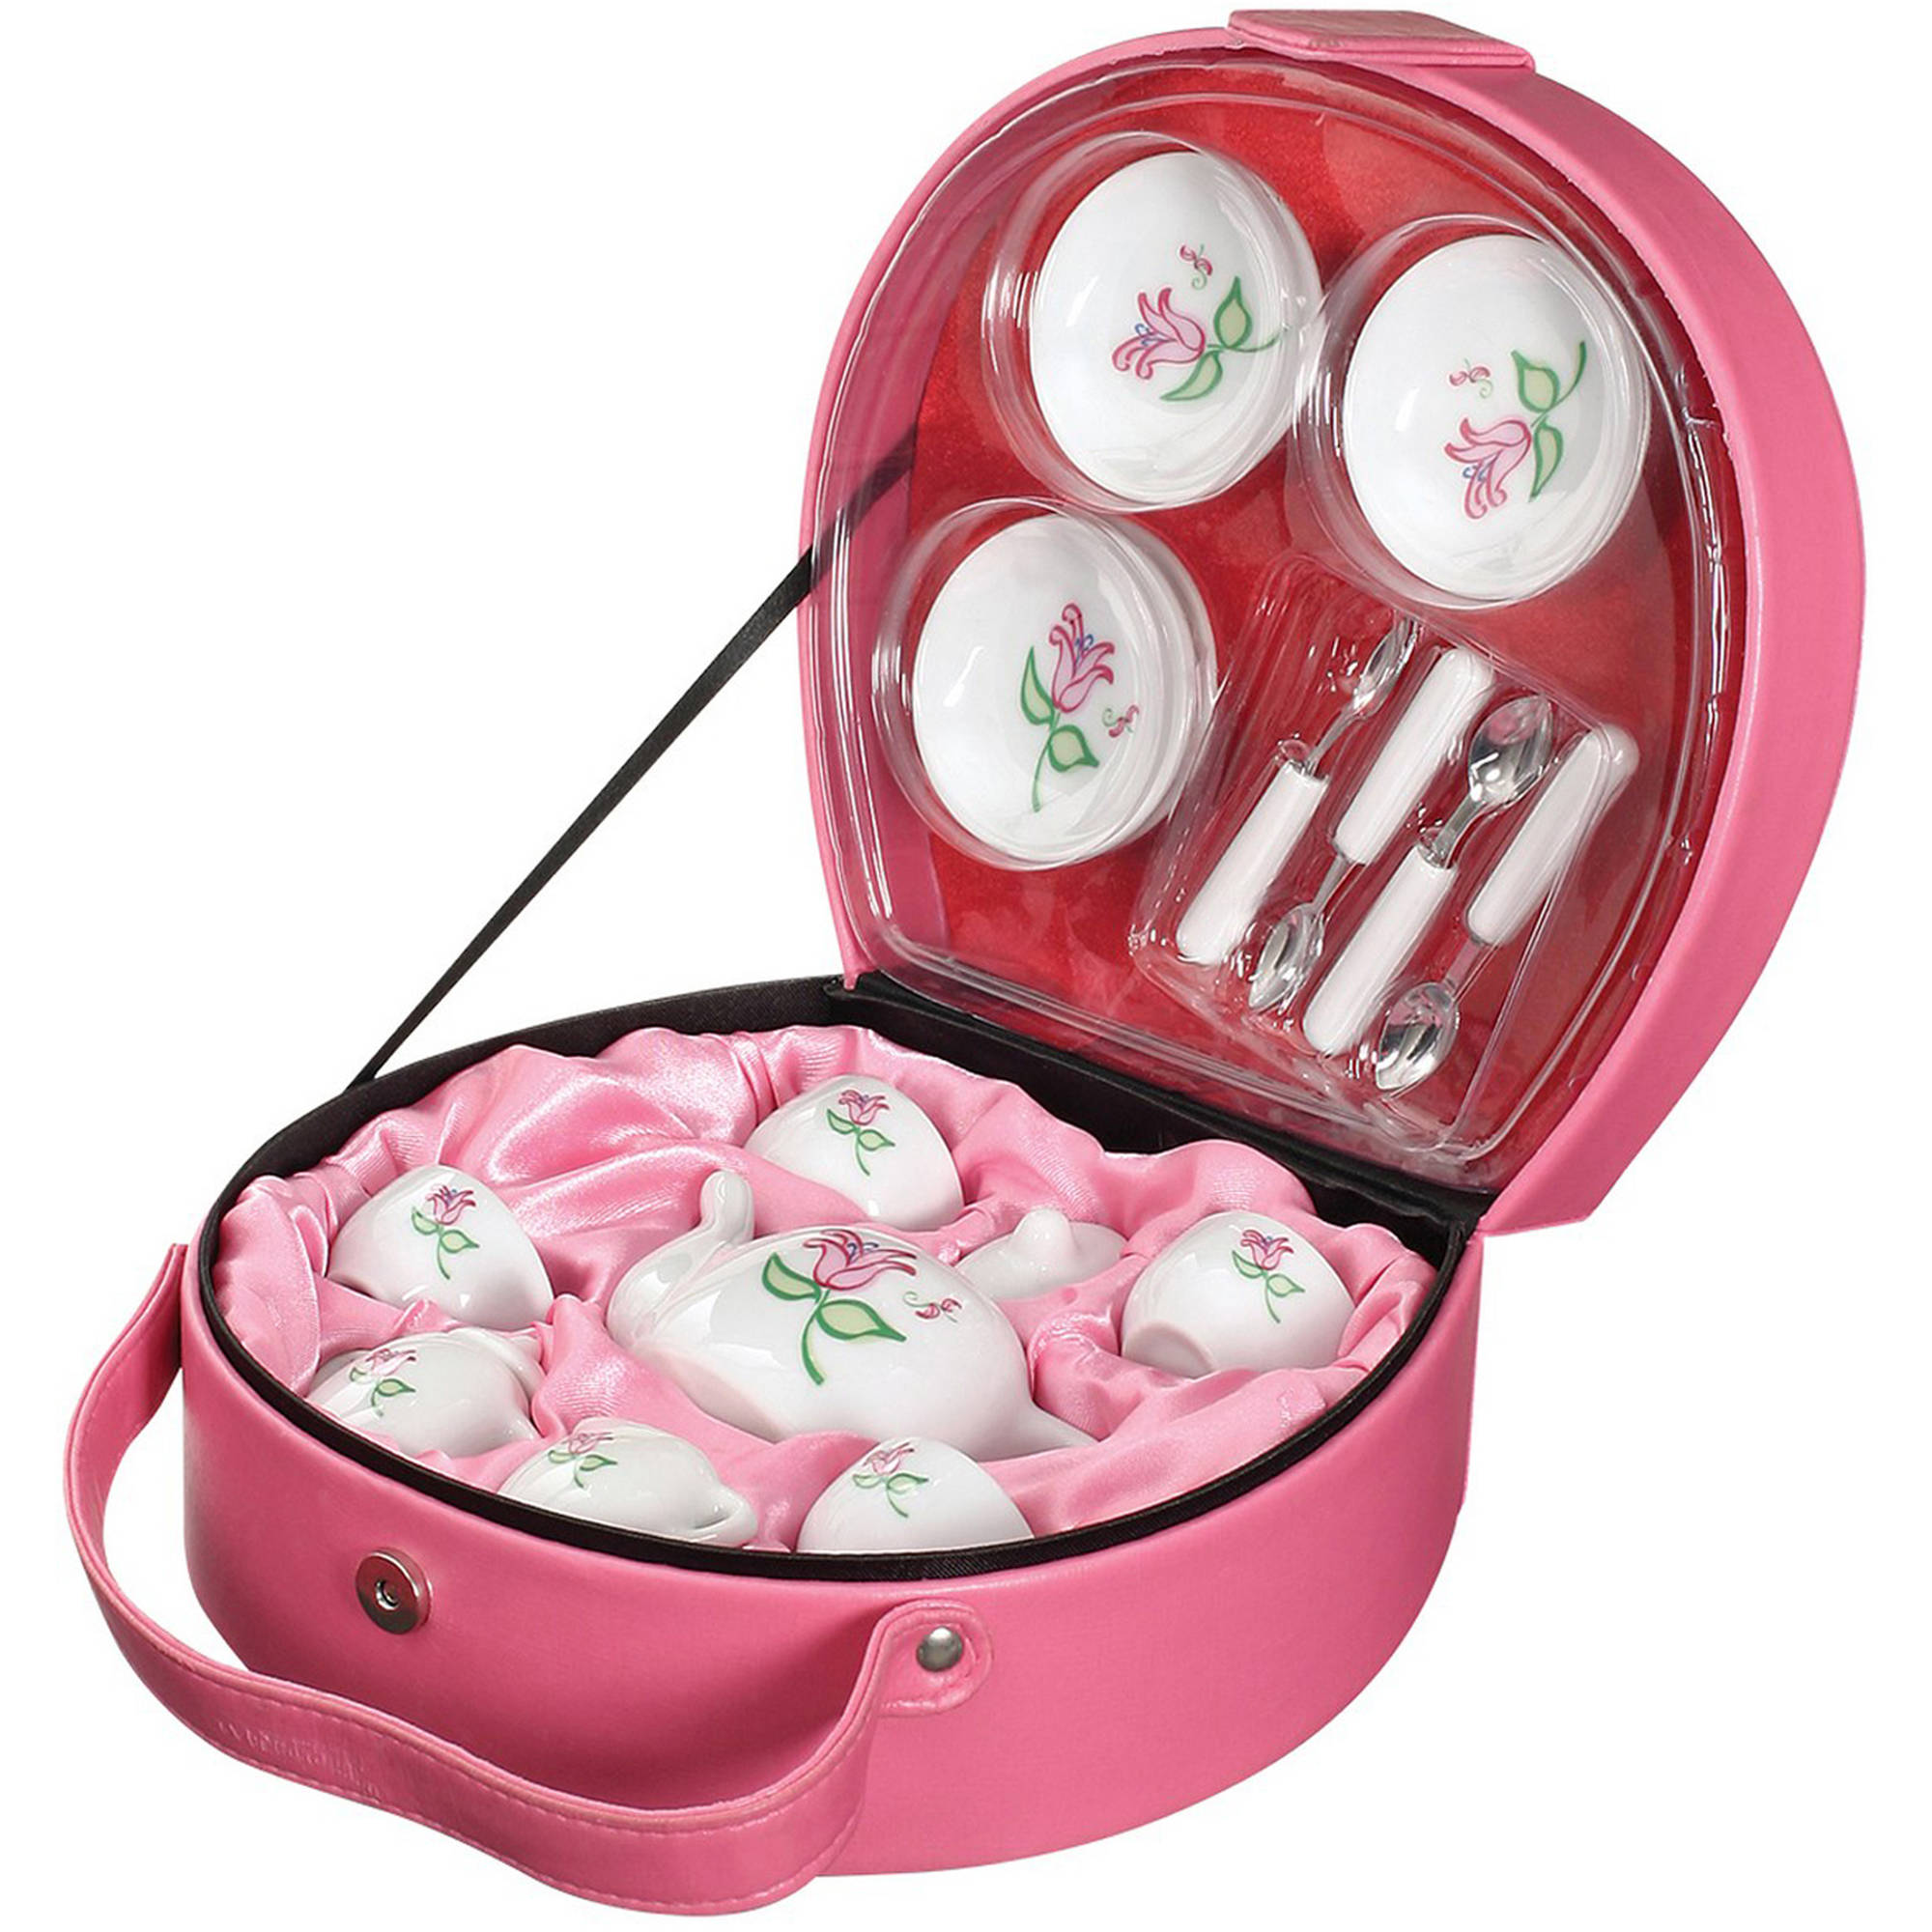 Toysmith 17-Piece Li'l Tea Tote Set